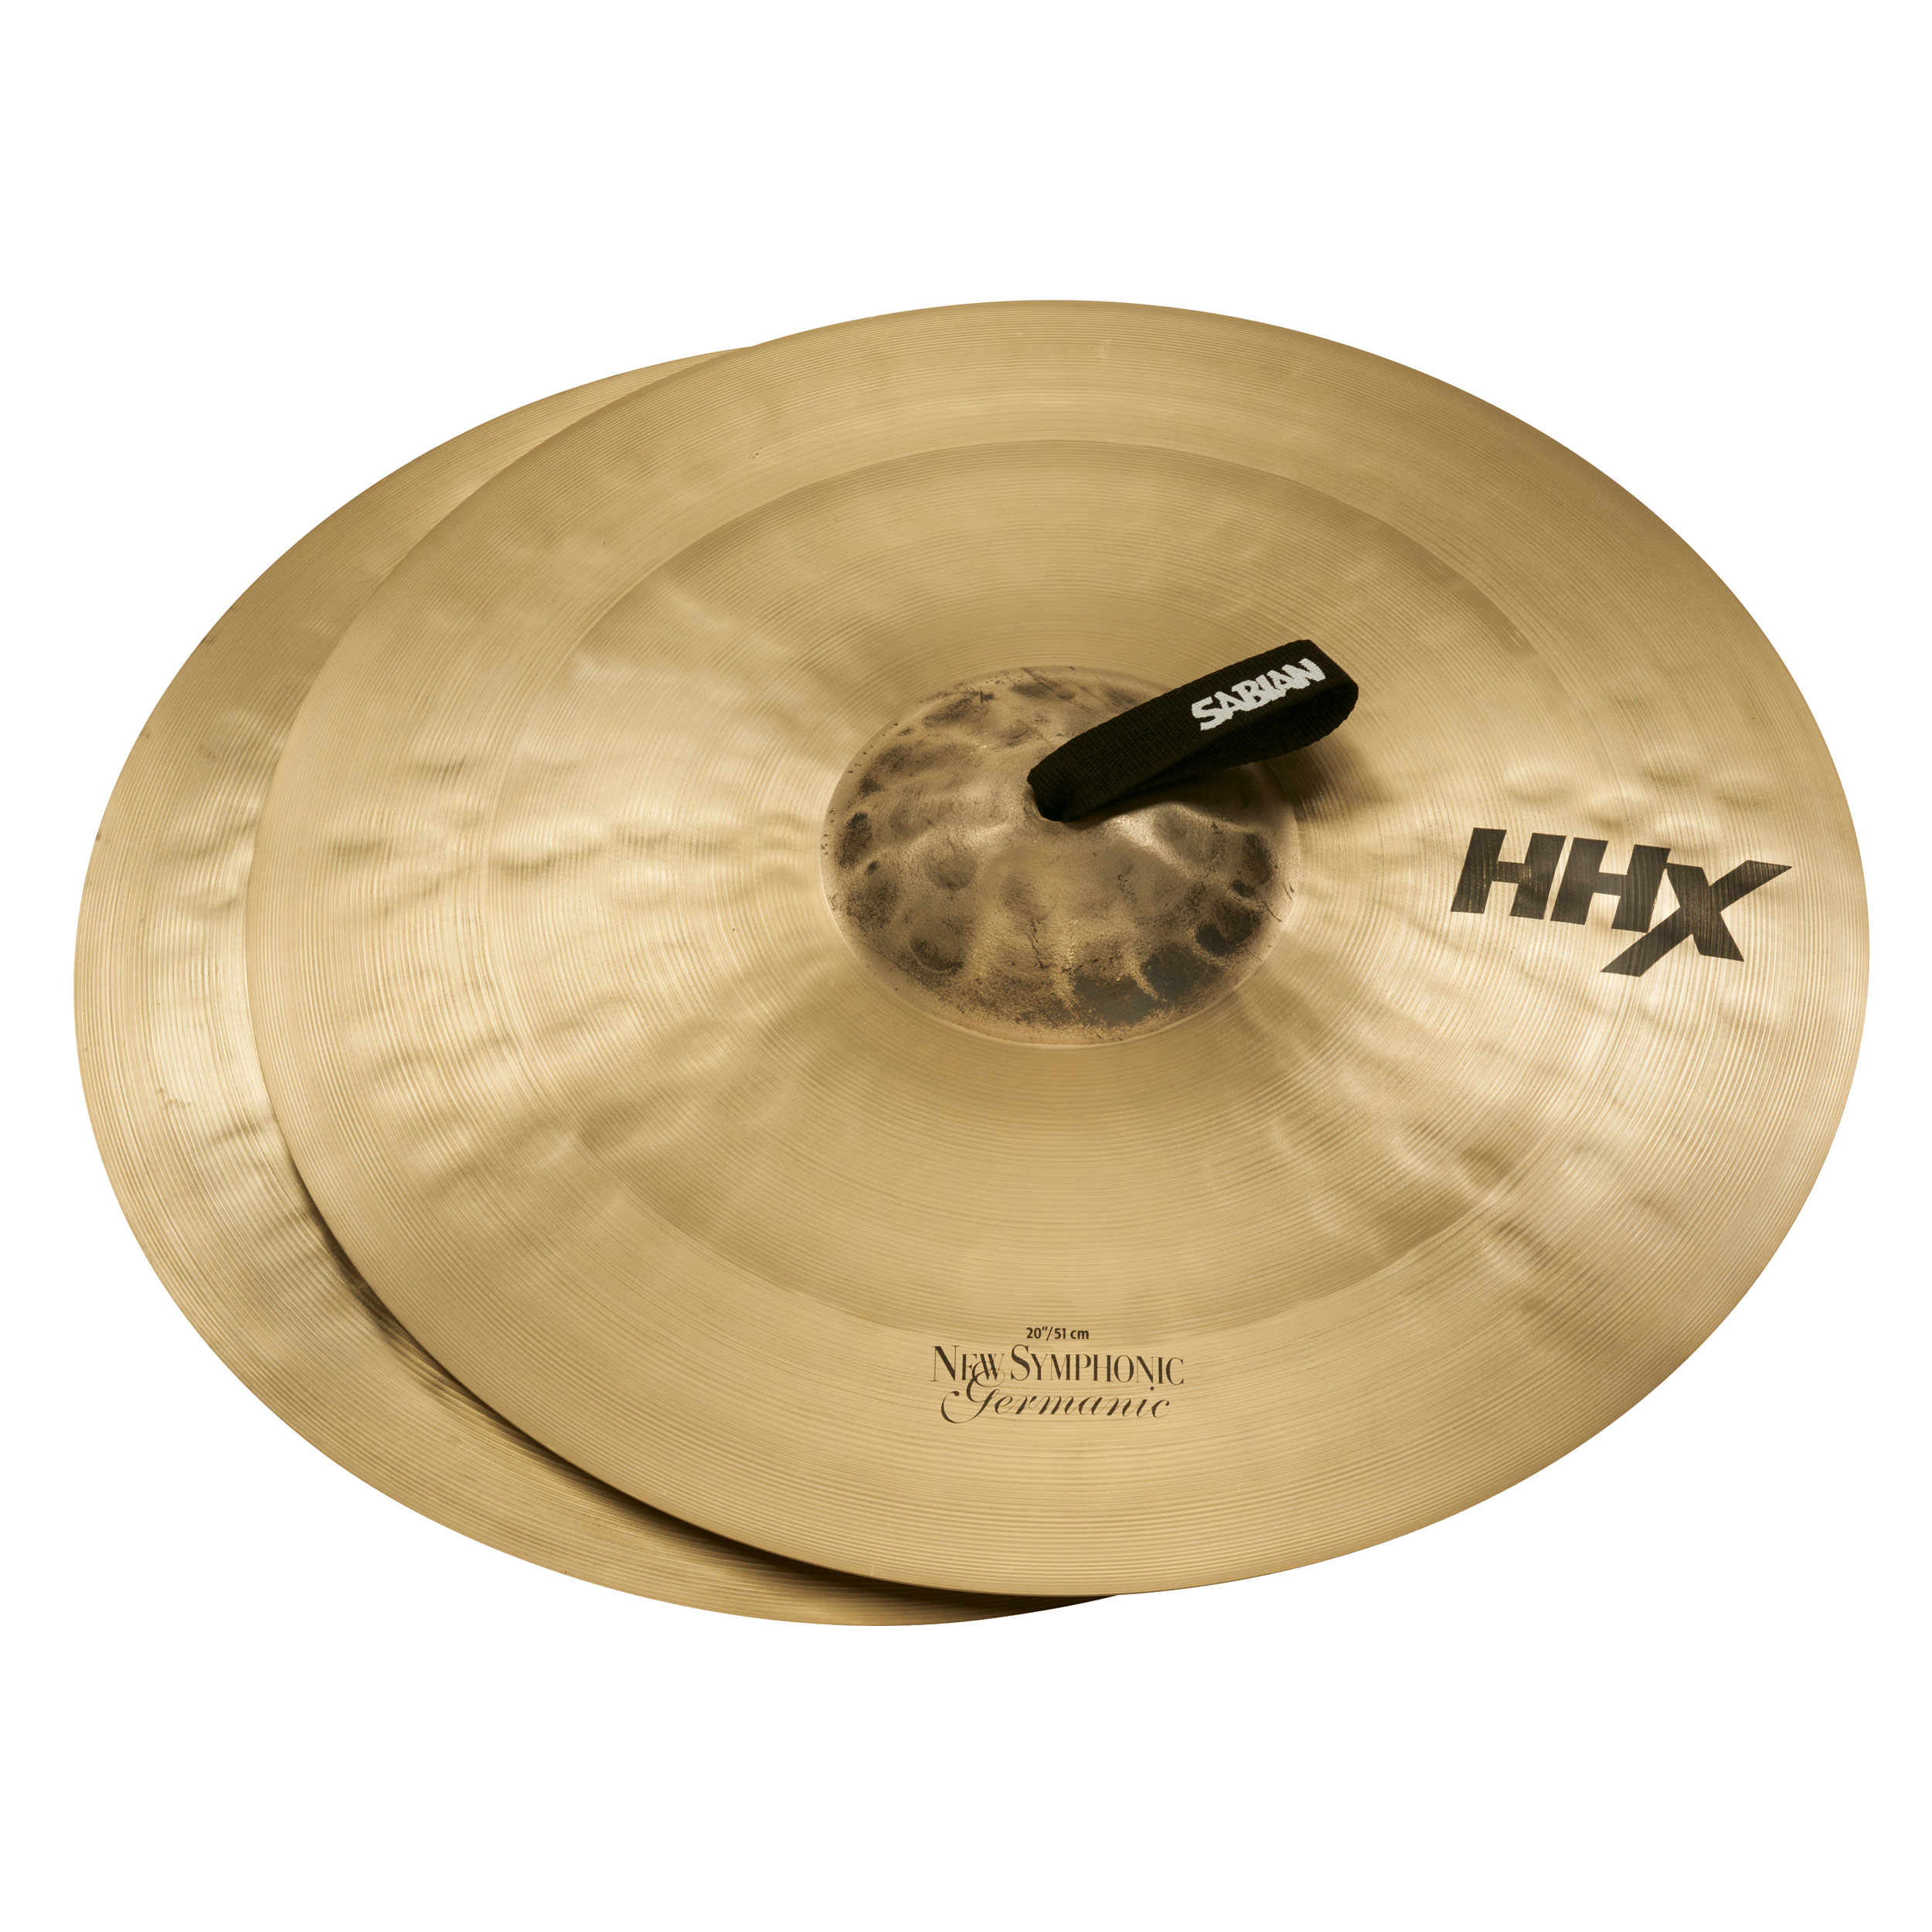 "Sabian 20"" HHX New Symphonic Germanic Crash Cymbal Pair"